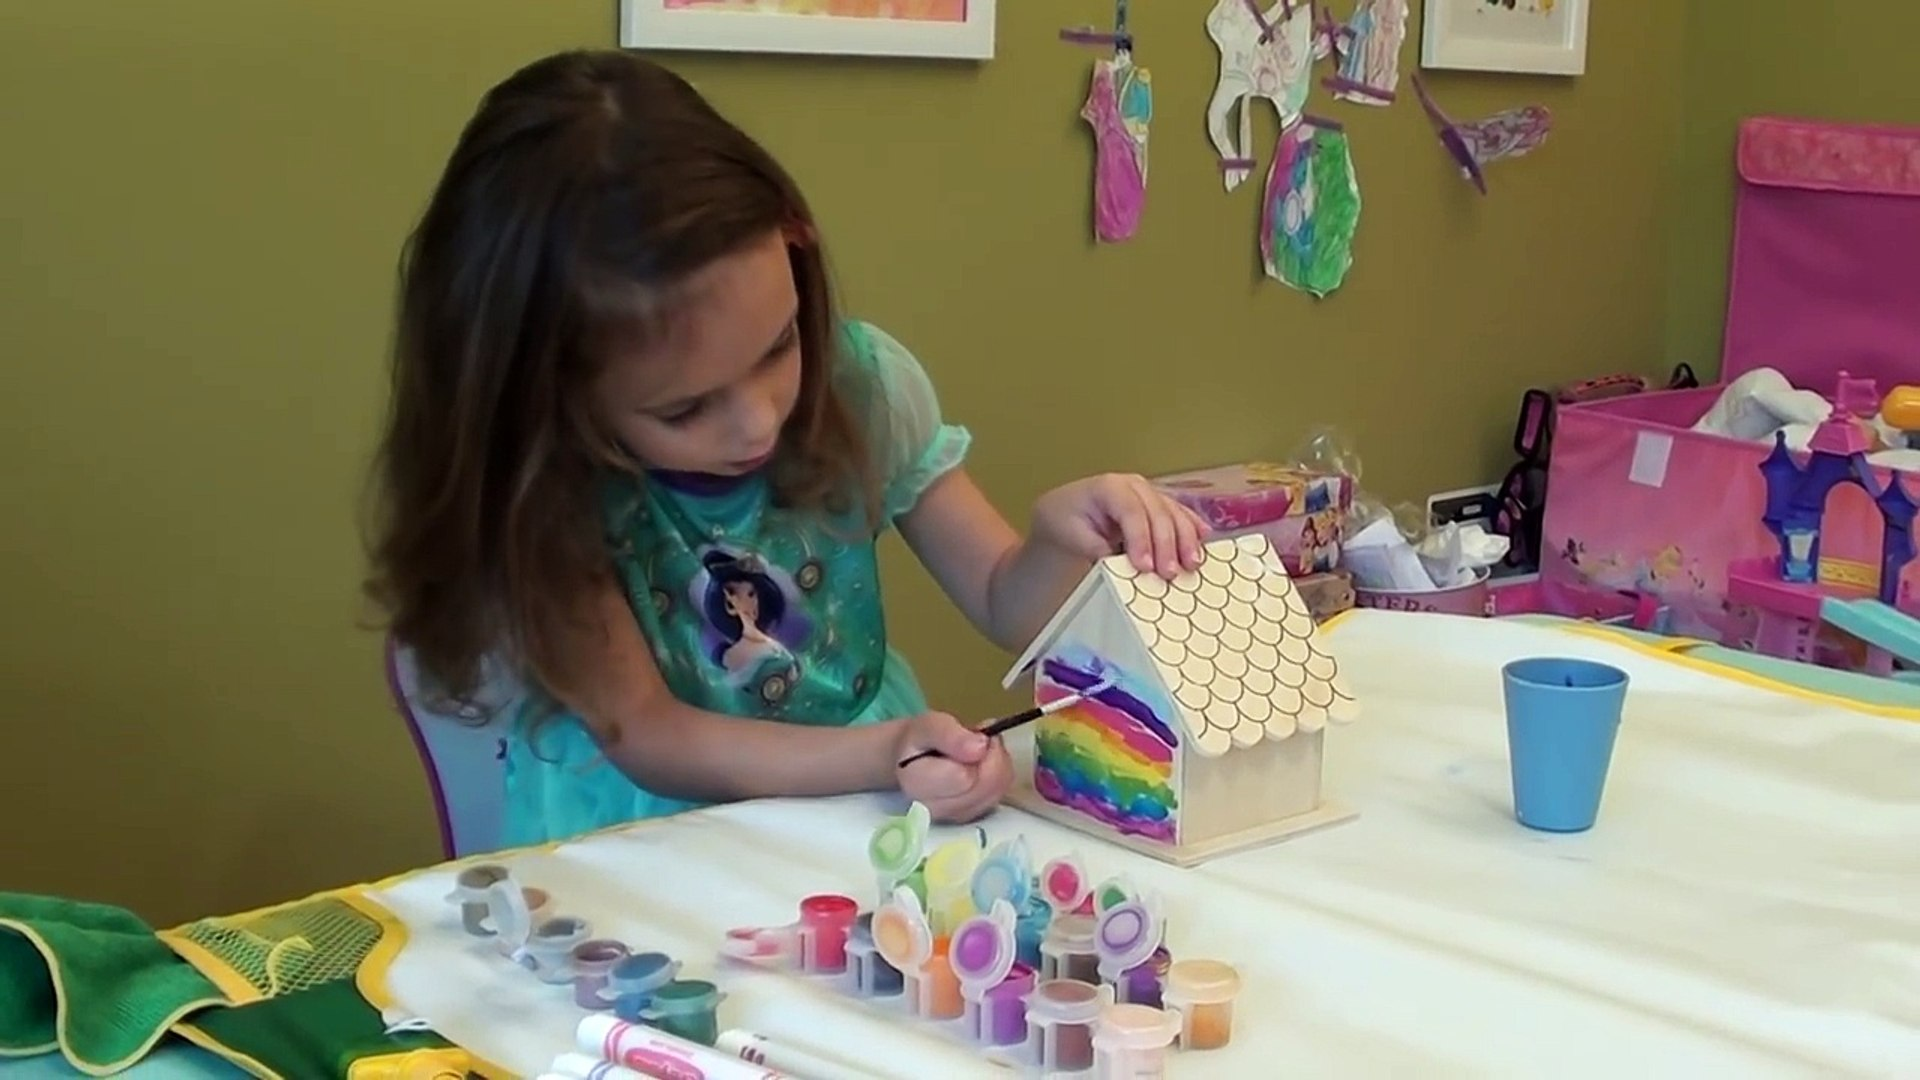 DIY Rainbow Bird House: Kids Art Project - Painting Rainbow Birdhouse Craft for Kids, Kids Video